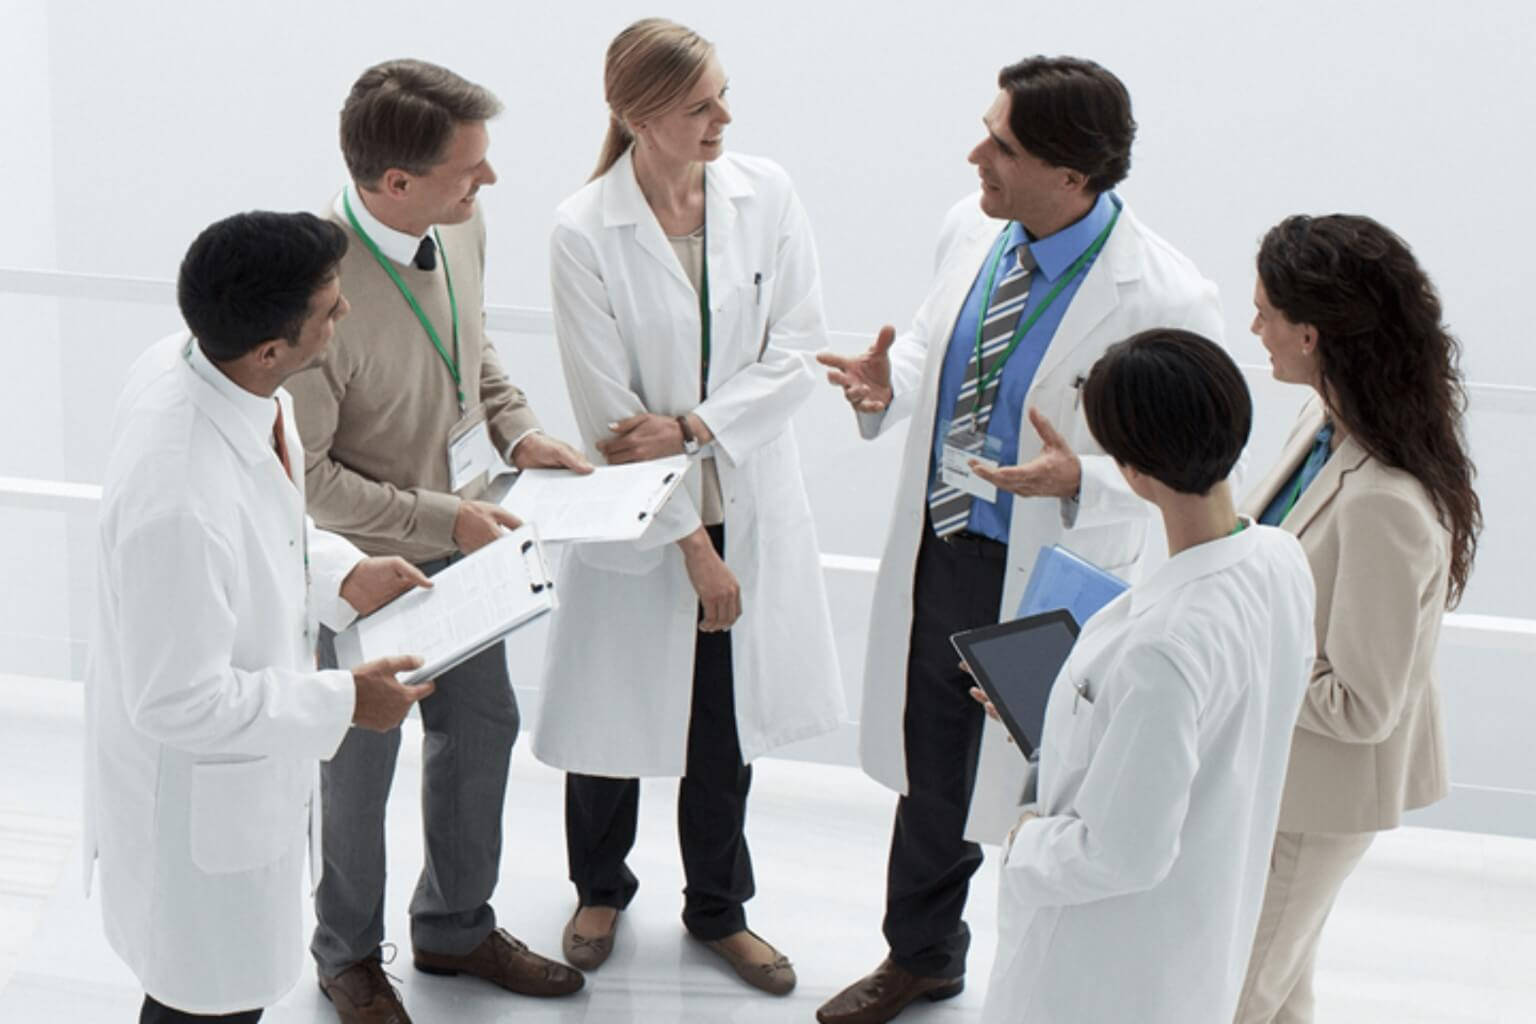 Clinicians meeting in a hallway